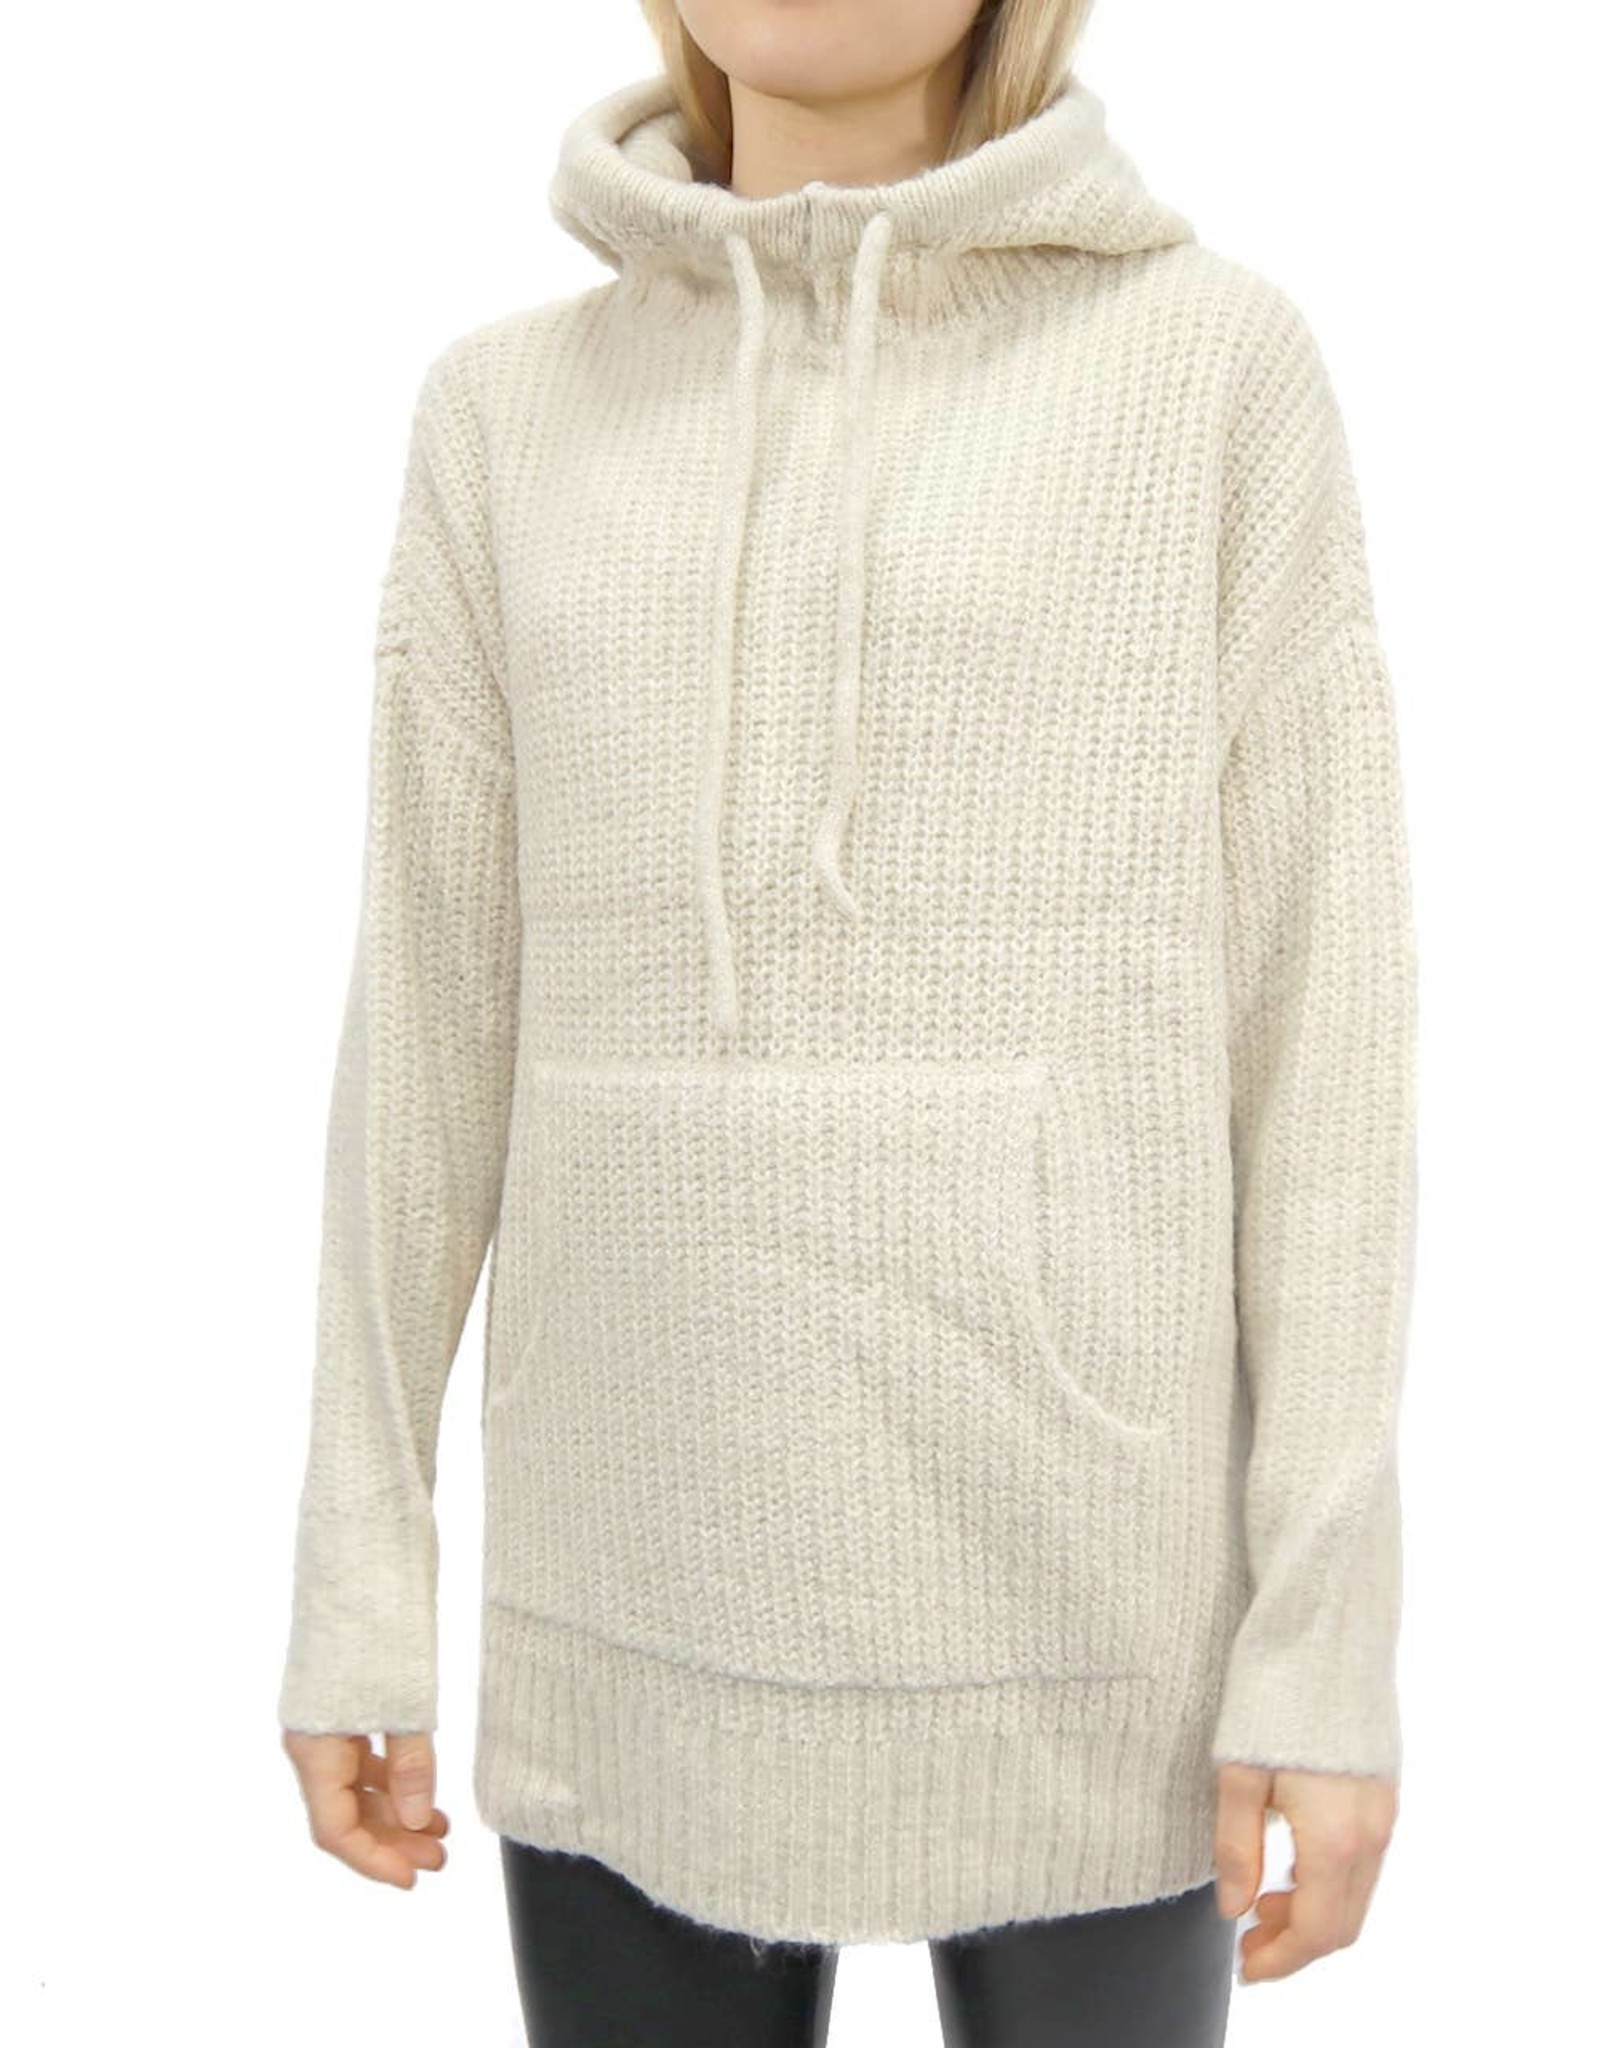 RD STYLE Oversized Knit Hoodie